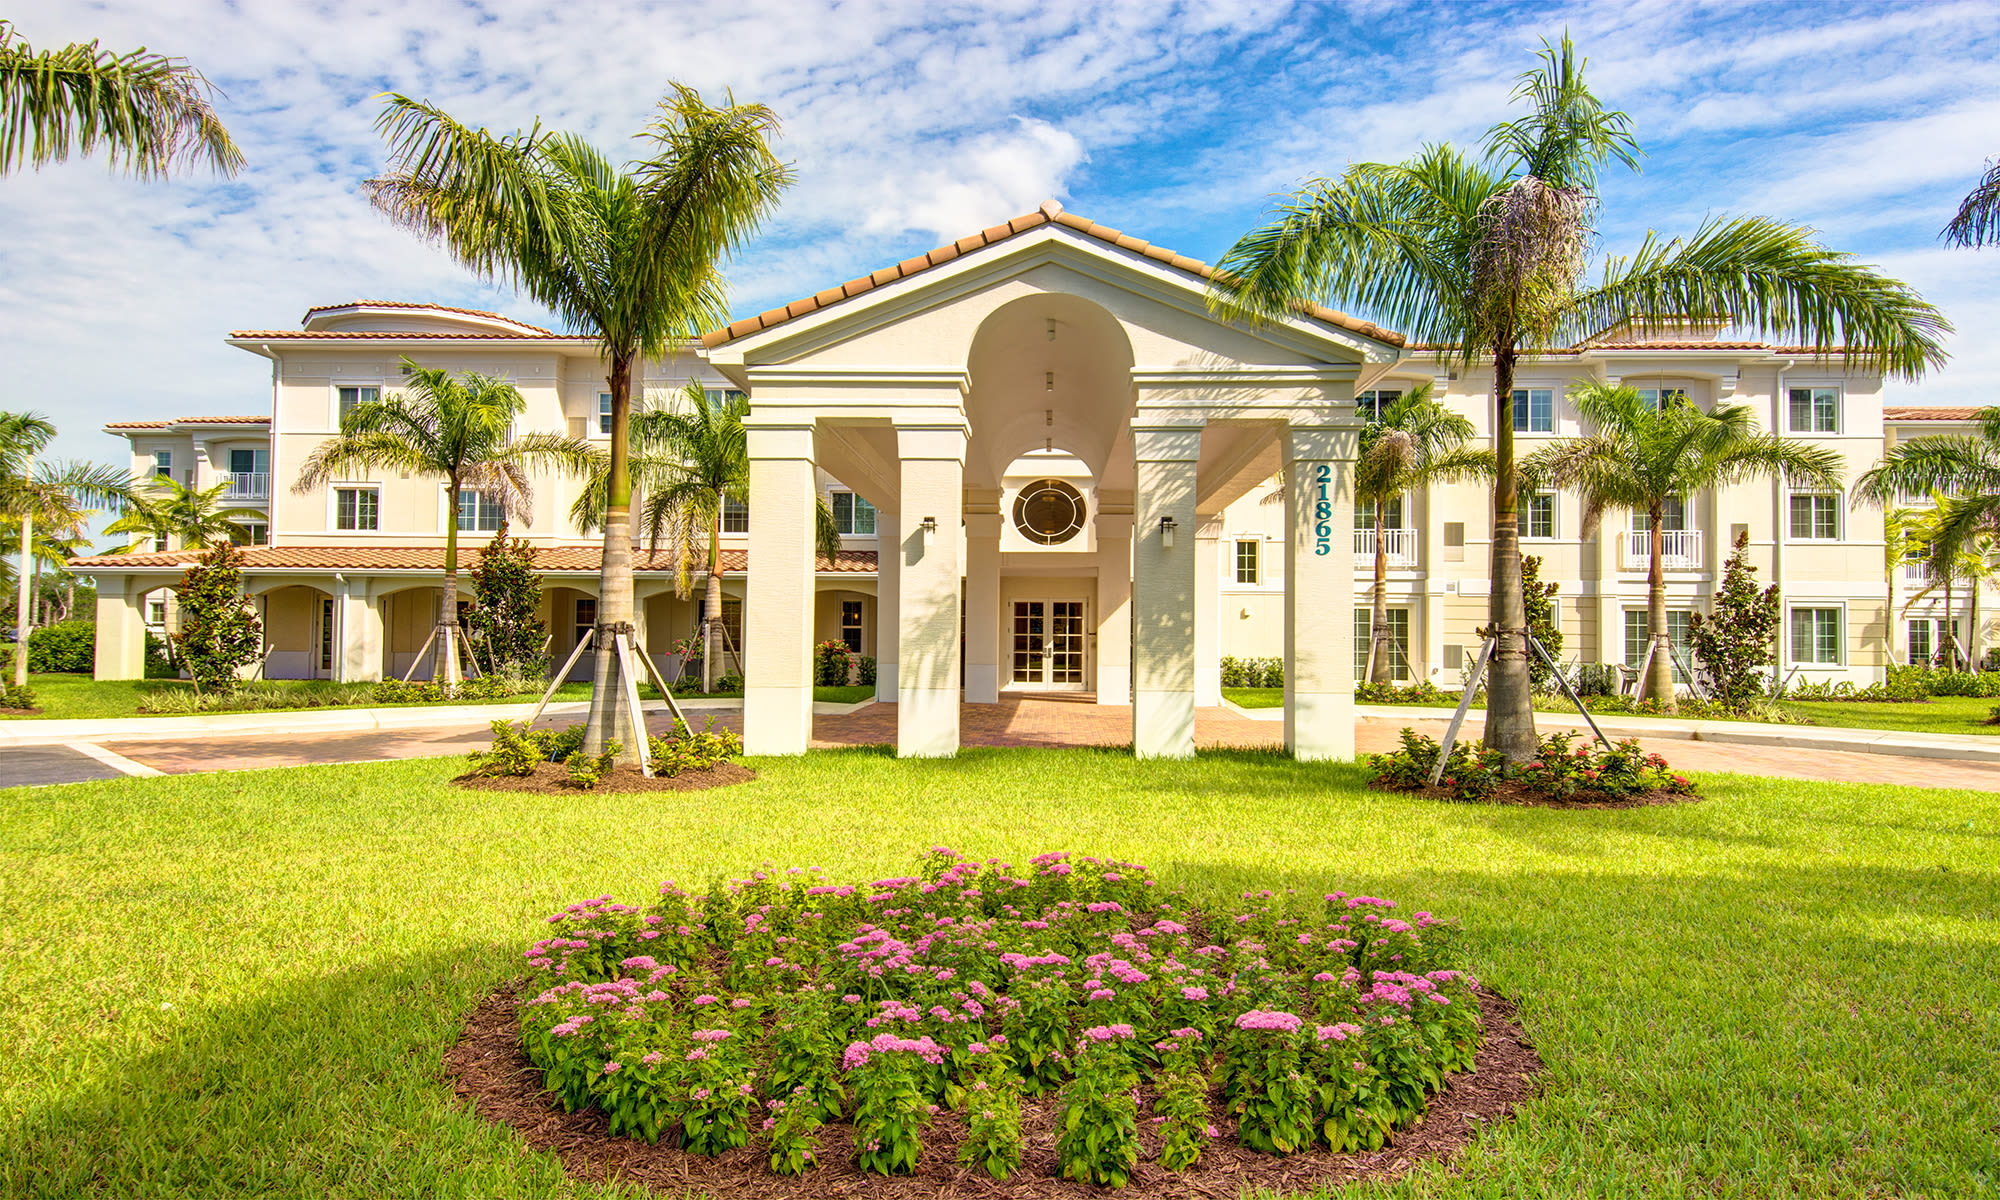 Symphony at Boca Raton senior living